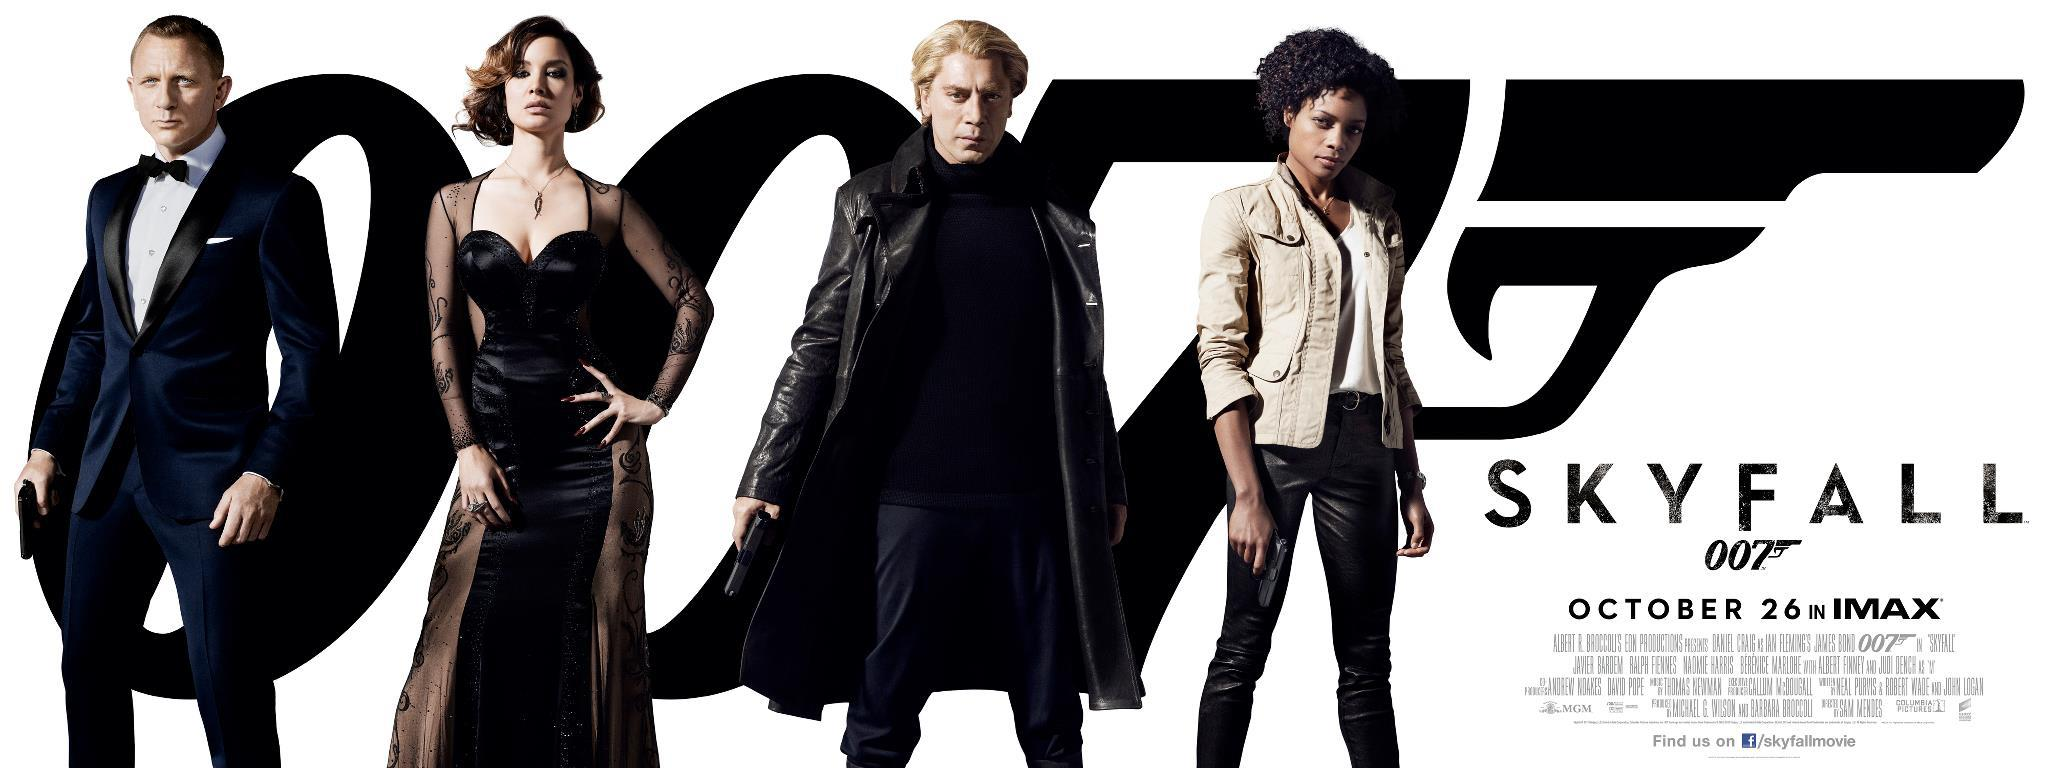 Skyfall Movie Poster featuring Daniel Craig as James Bond; Bérénice Marlohe as Sévérine; Javier Bardem as Silva; Naomie Harris as Eve